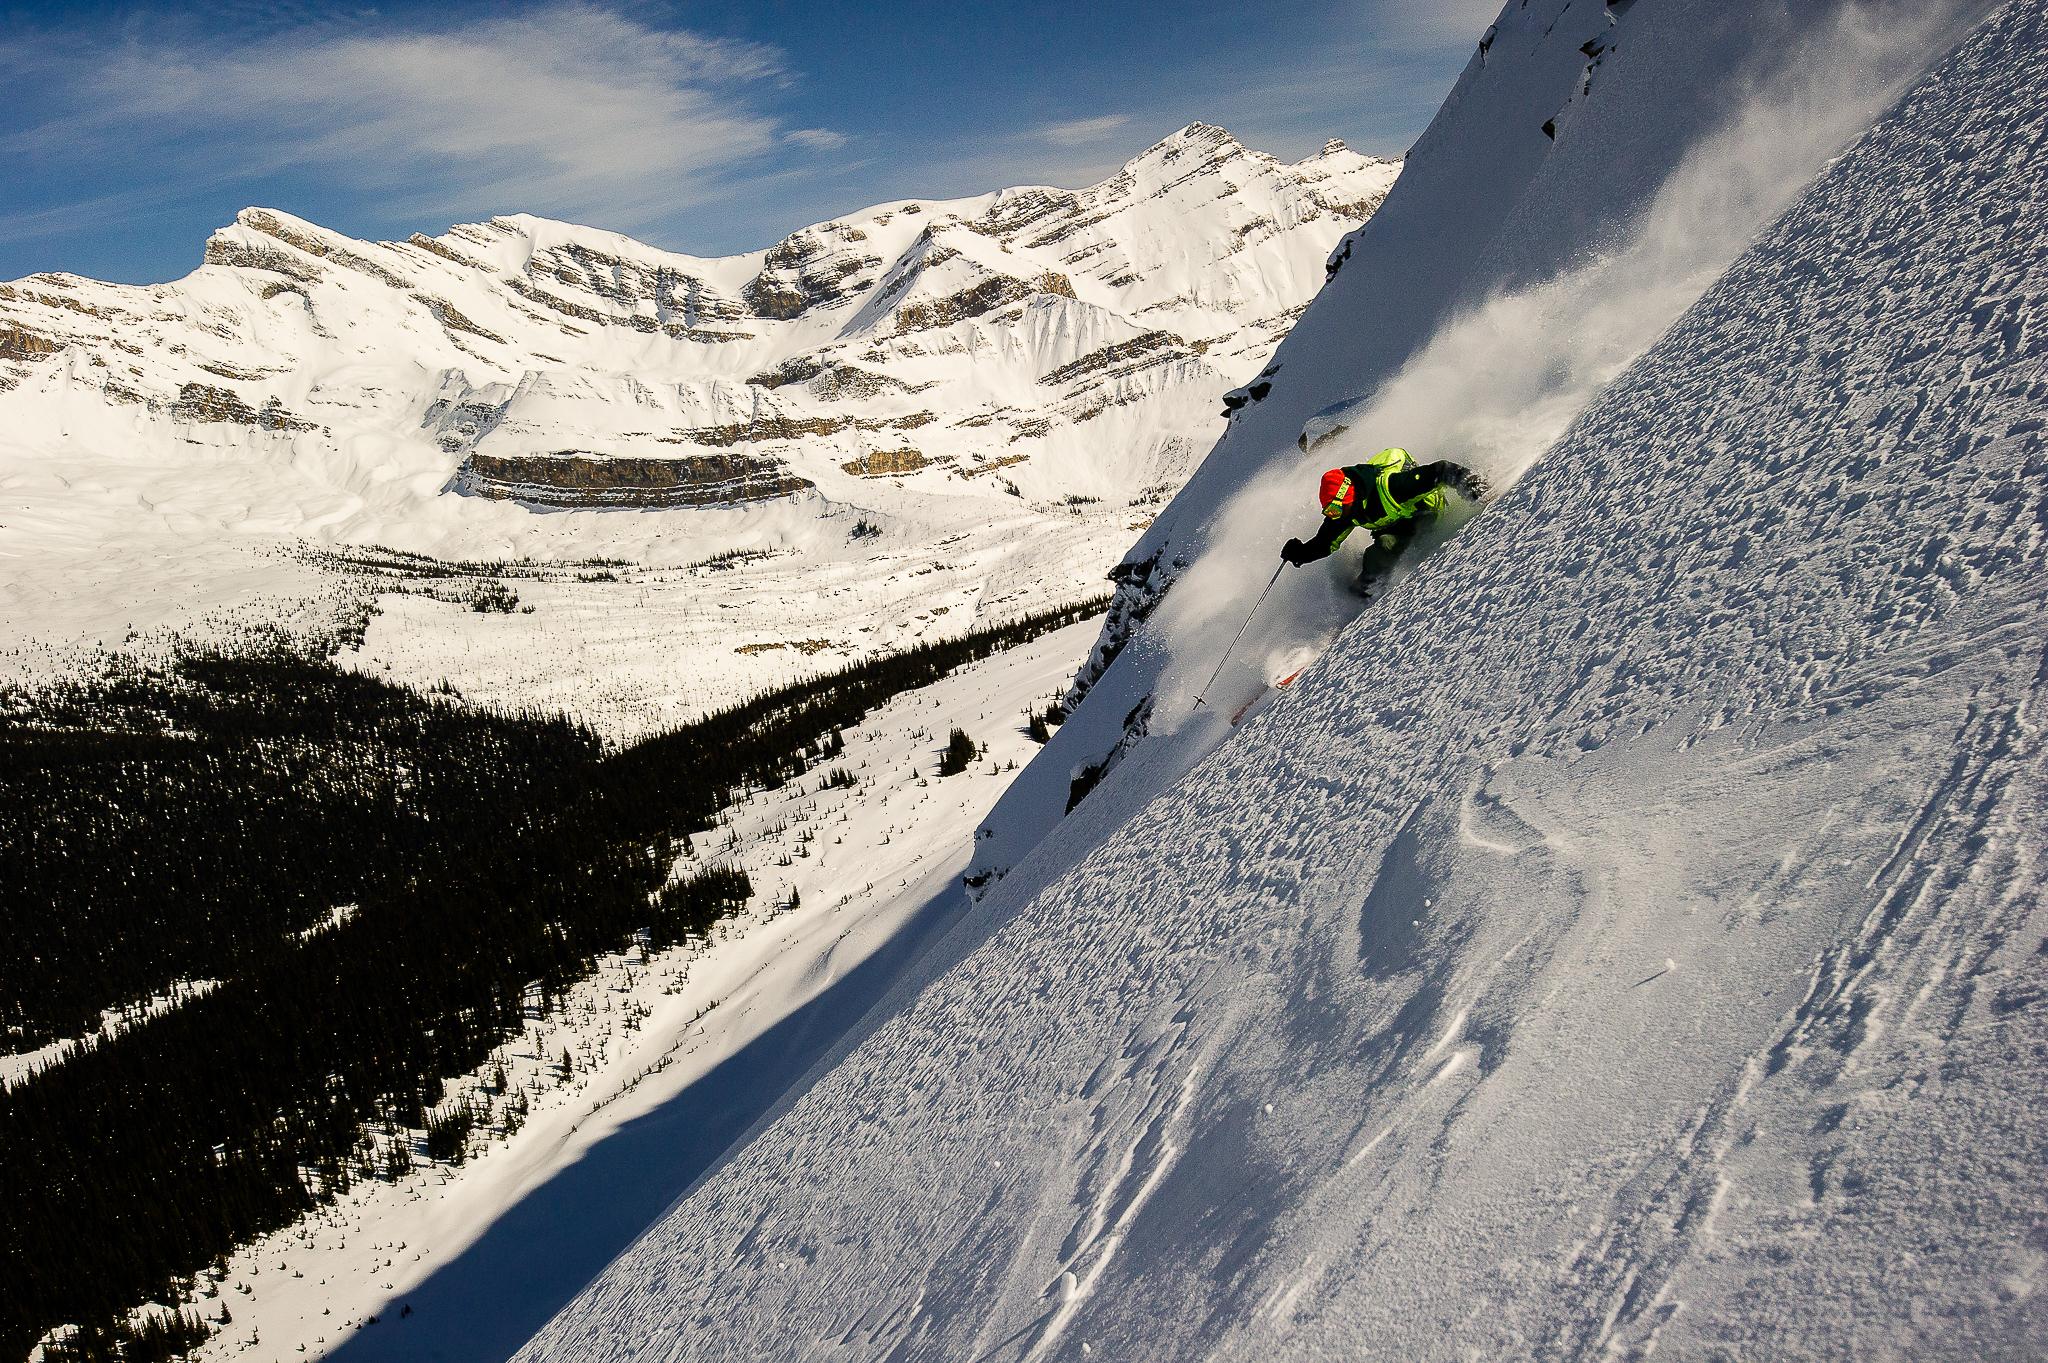 Skier: Sean Cochrane Location: Amiskwi Lodge, Rocky Mountains, AB